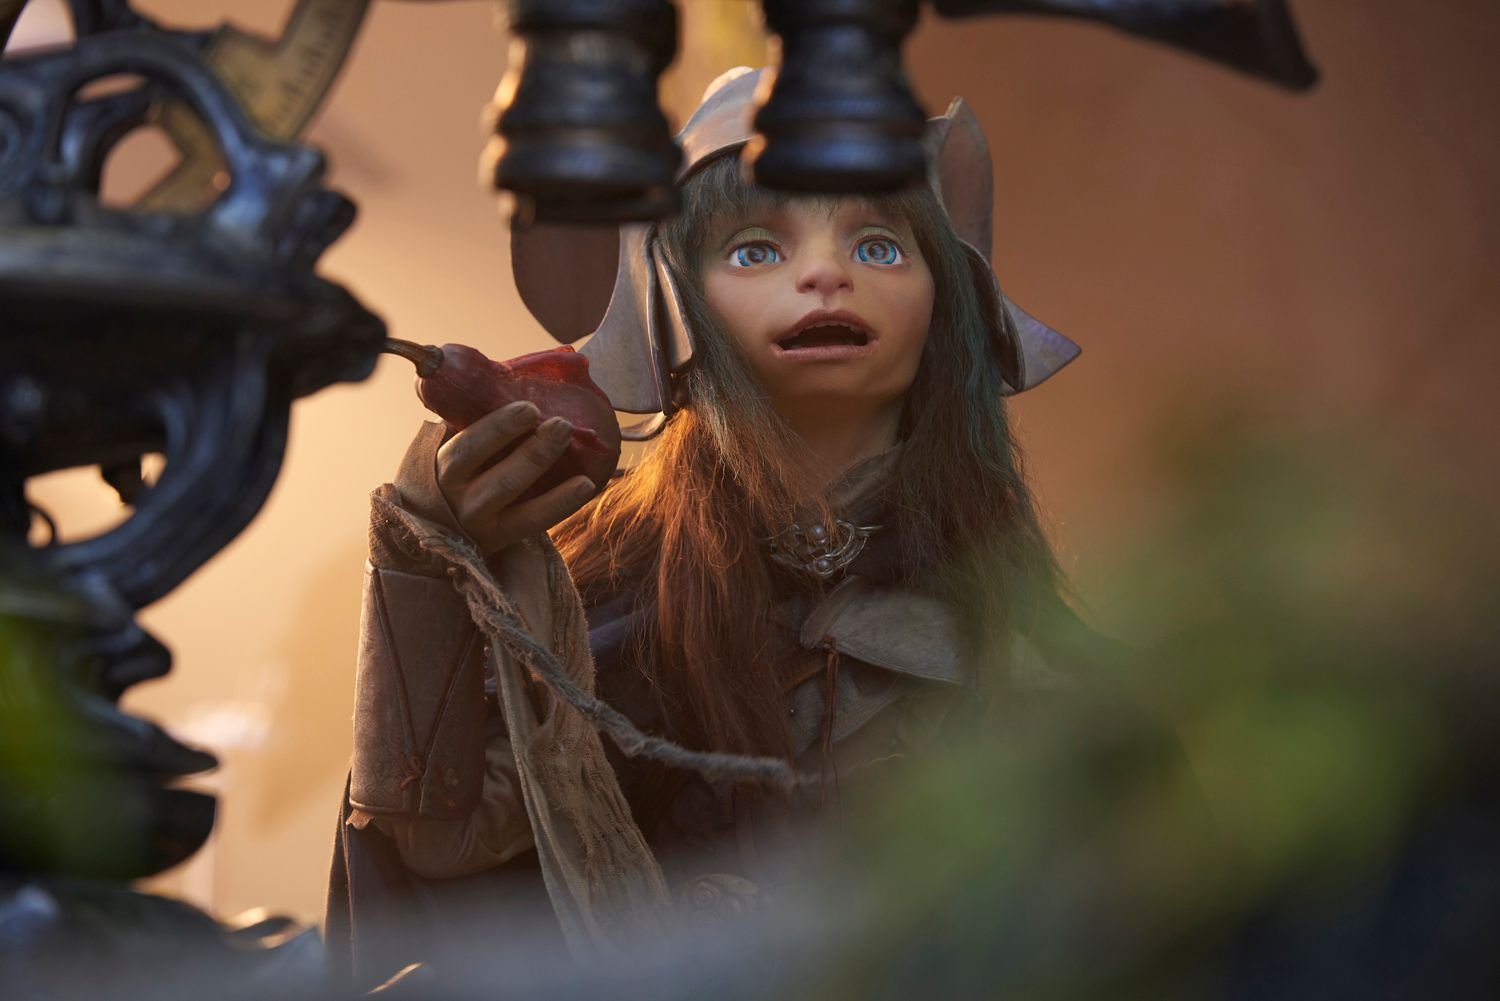 'Dark Crystal' series to debut on Netflix Aug. 30